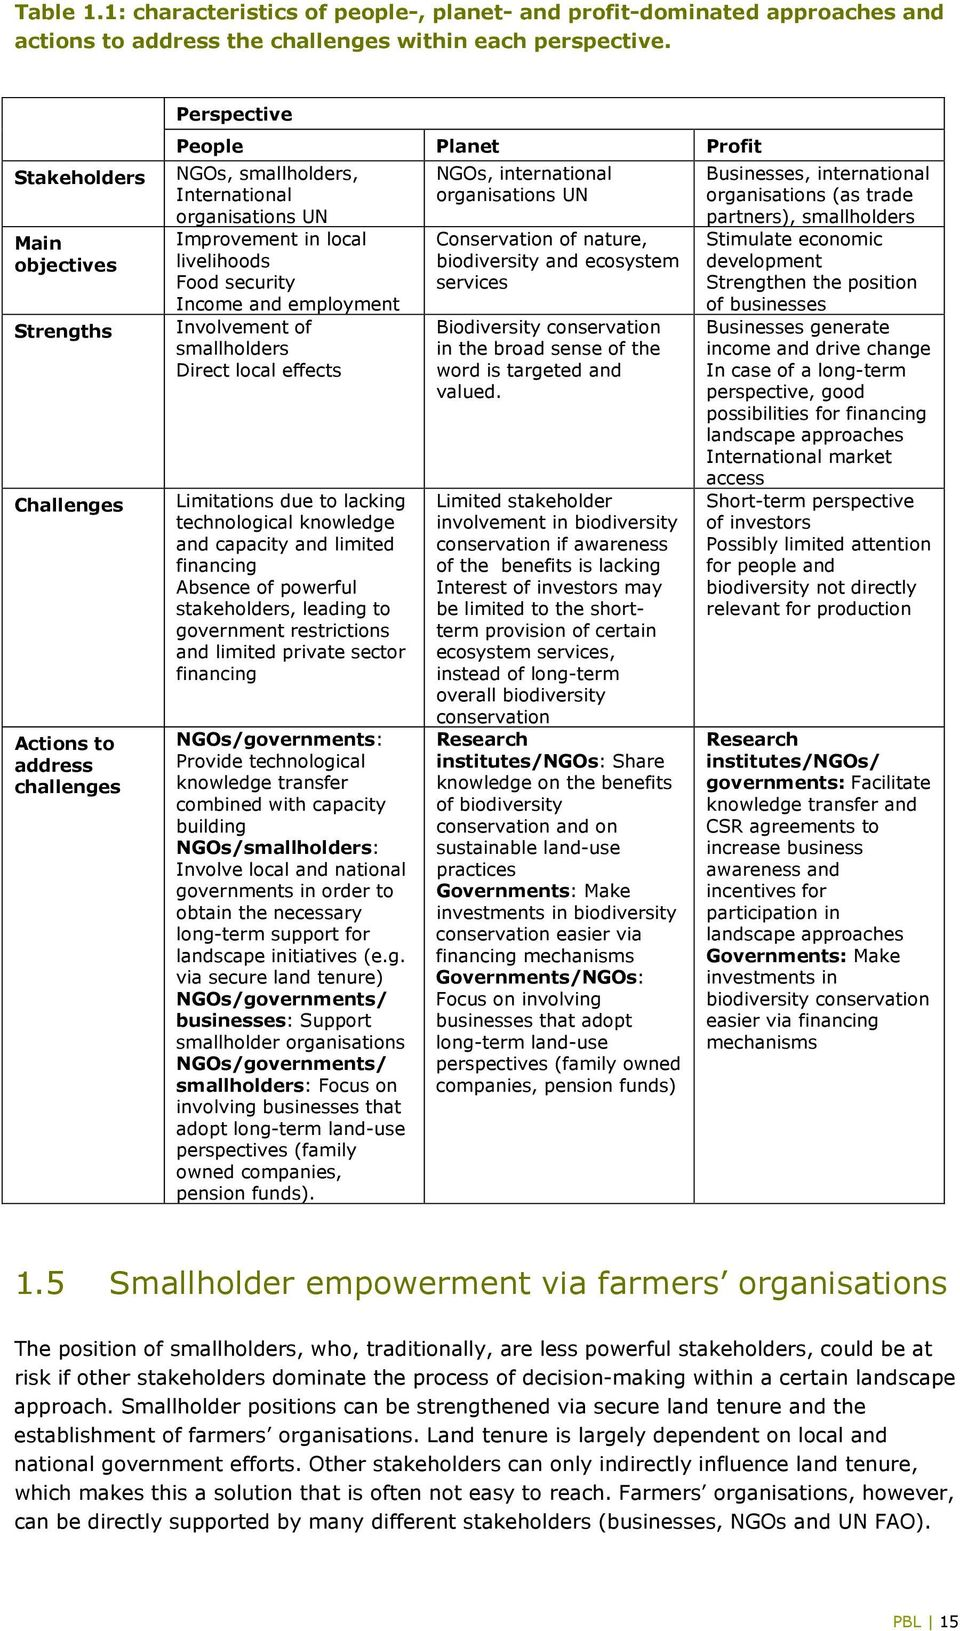 Food security Income and employment Involvement of smallholders Direct local effects Limitations due to lacking technological knowledge and capacity and limited financing Absence of powerful